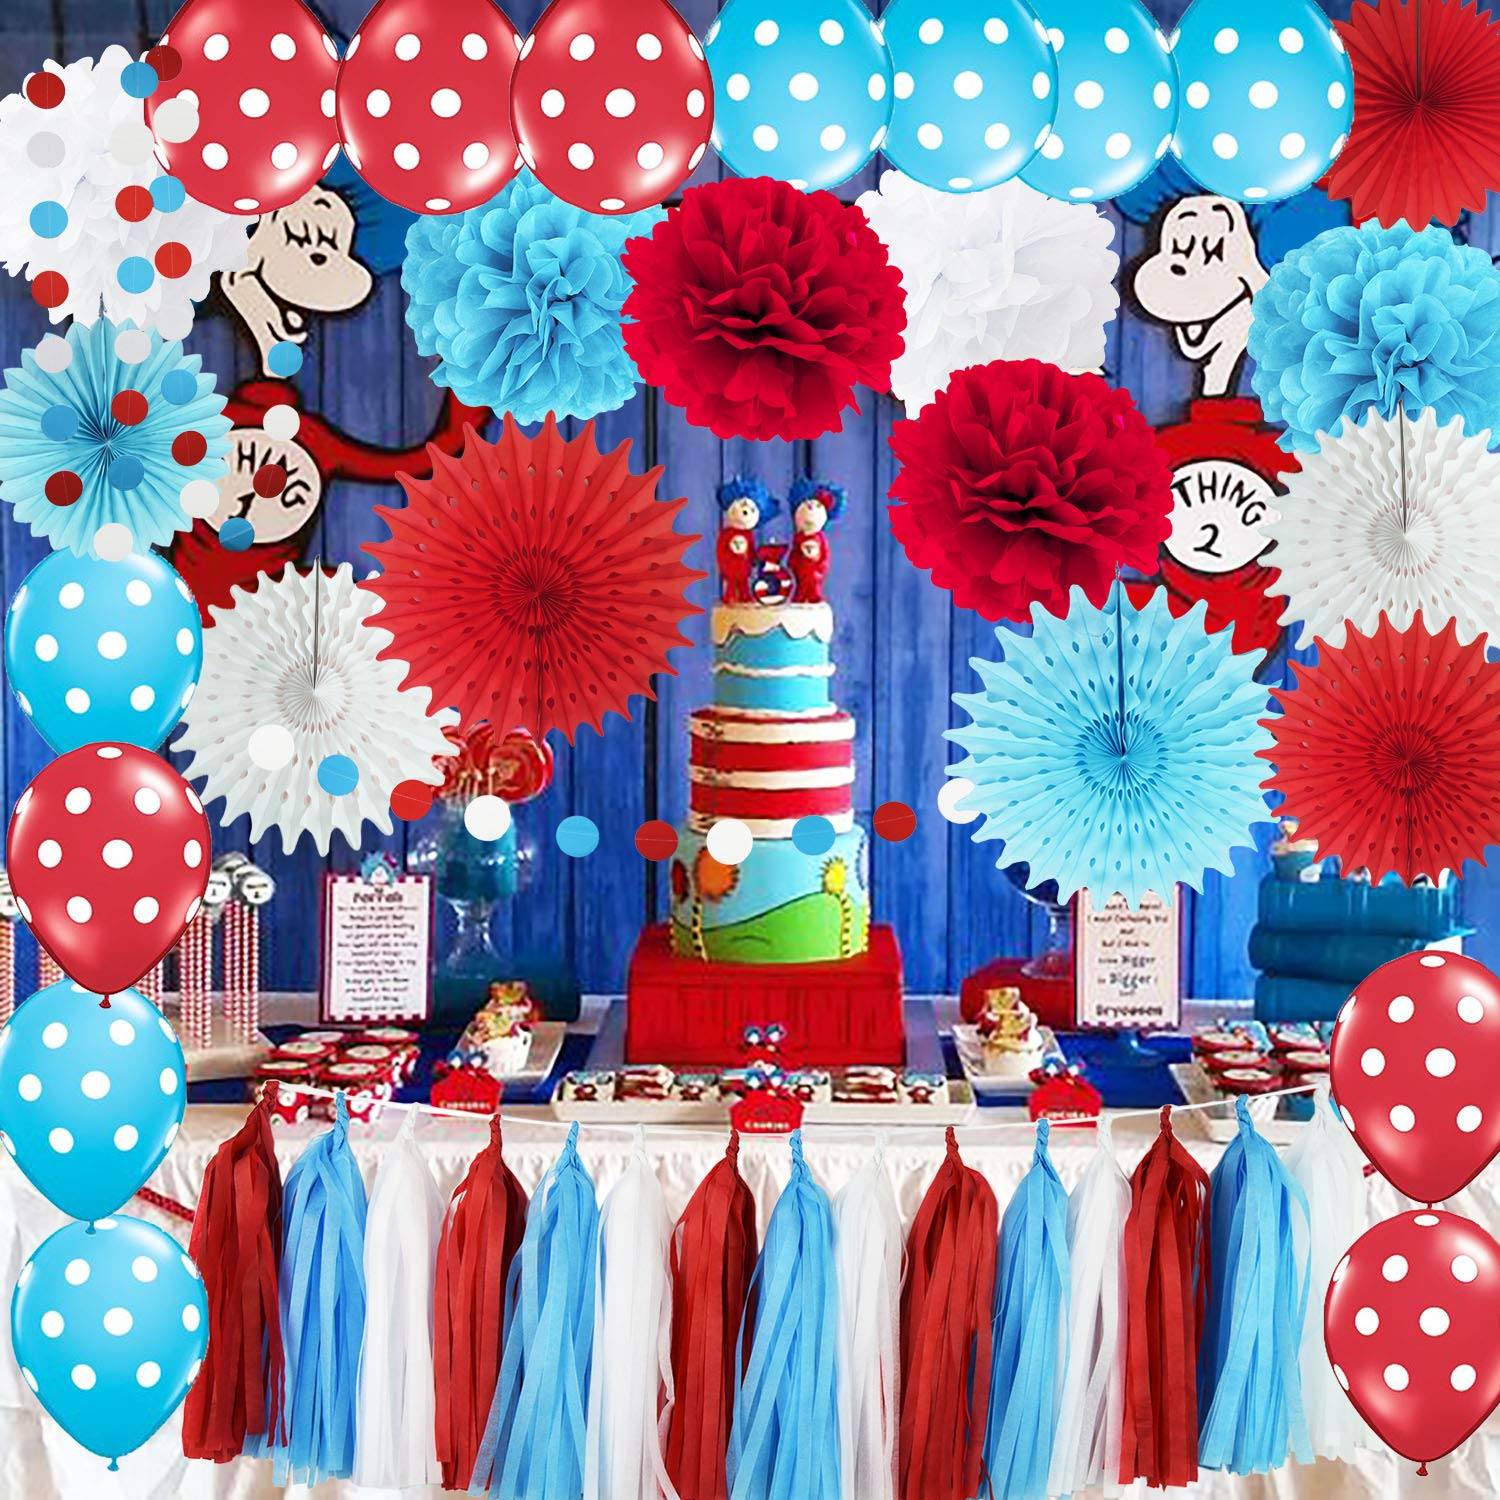 Party Decorations Turquoise Ballons Birthday